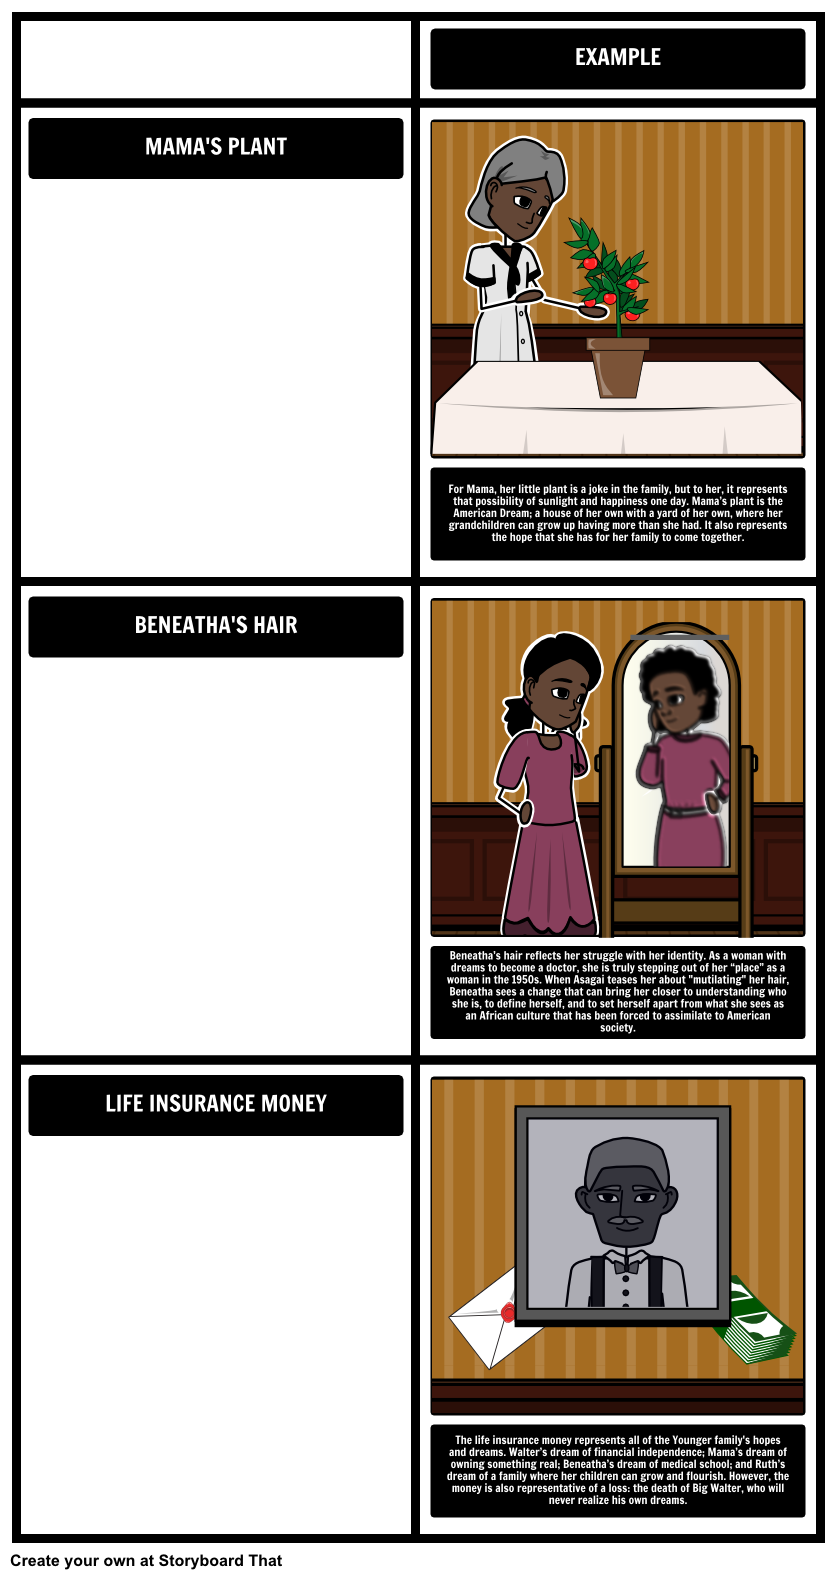 A raisin in the sun by lorraine hansberry themes symbols and lesson plans for lorraine hansberrys a raisin in the sun summary theme symbols character map literary conflict text connections for students biocorpaavc Gallery